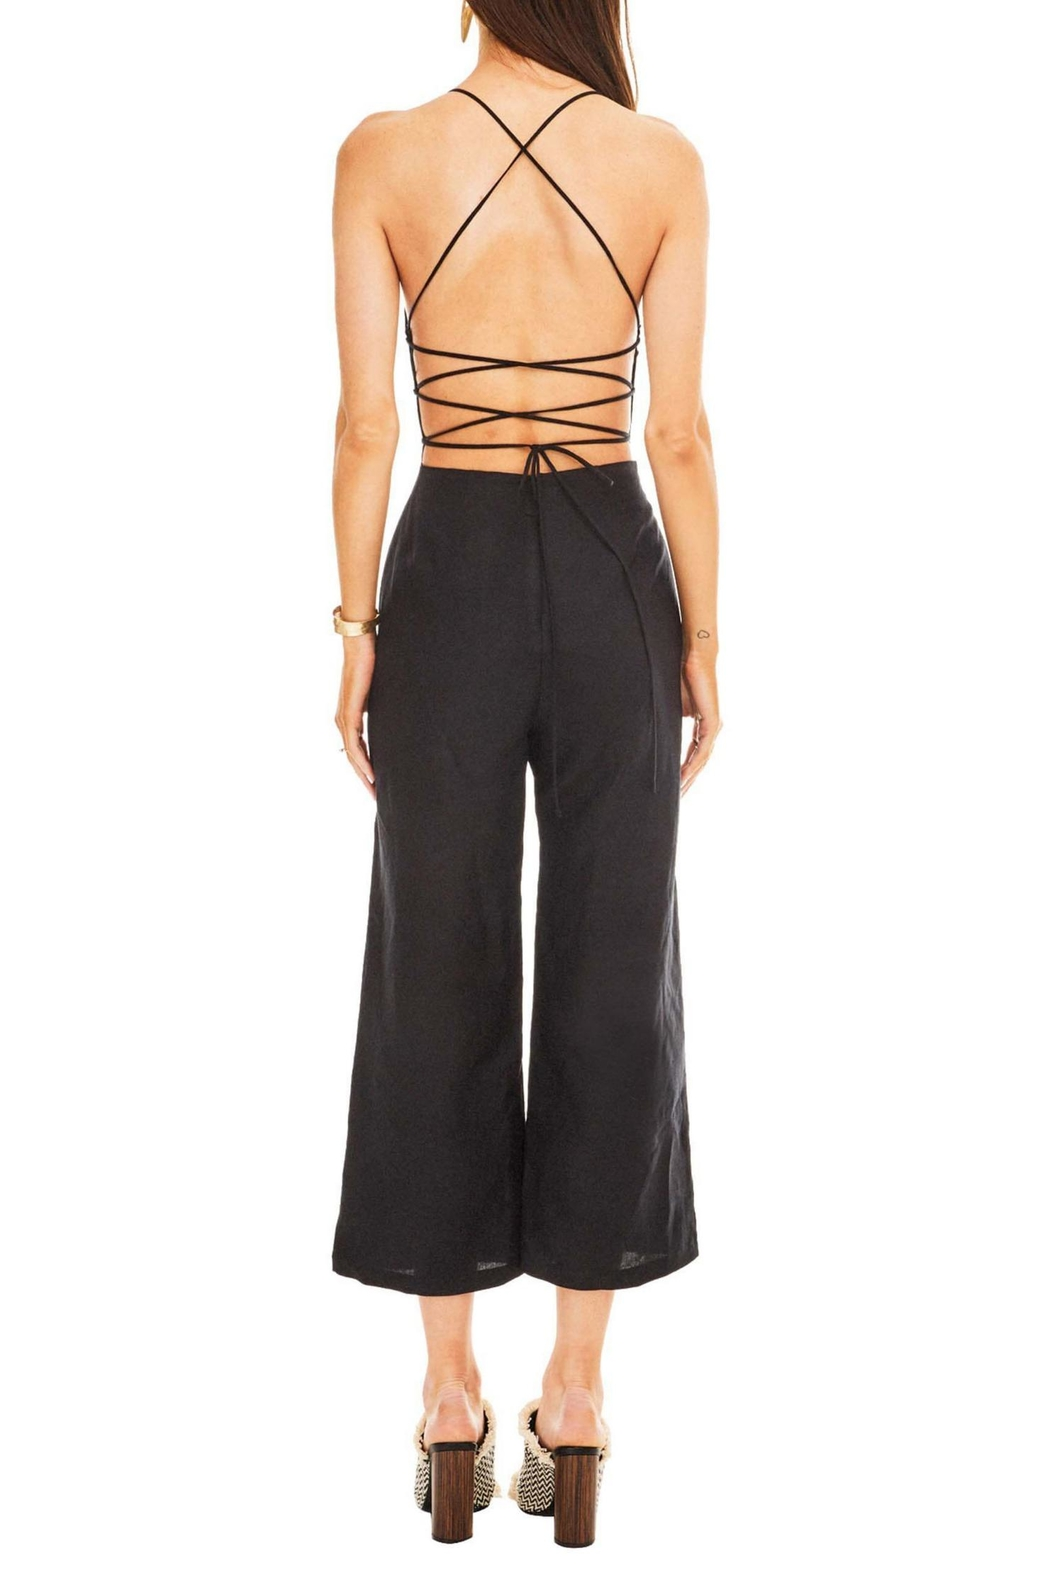 ASTR Leighton Jumpsuit - Side Cropped Image